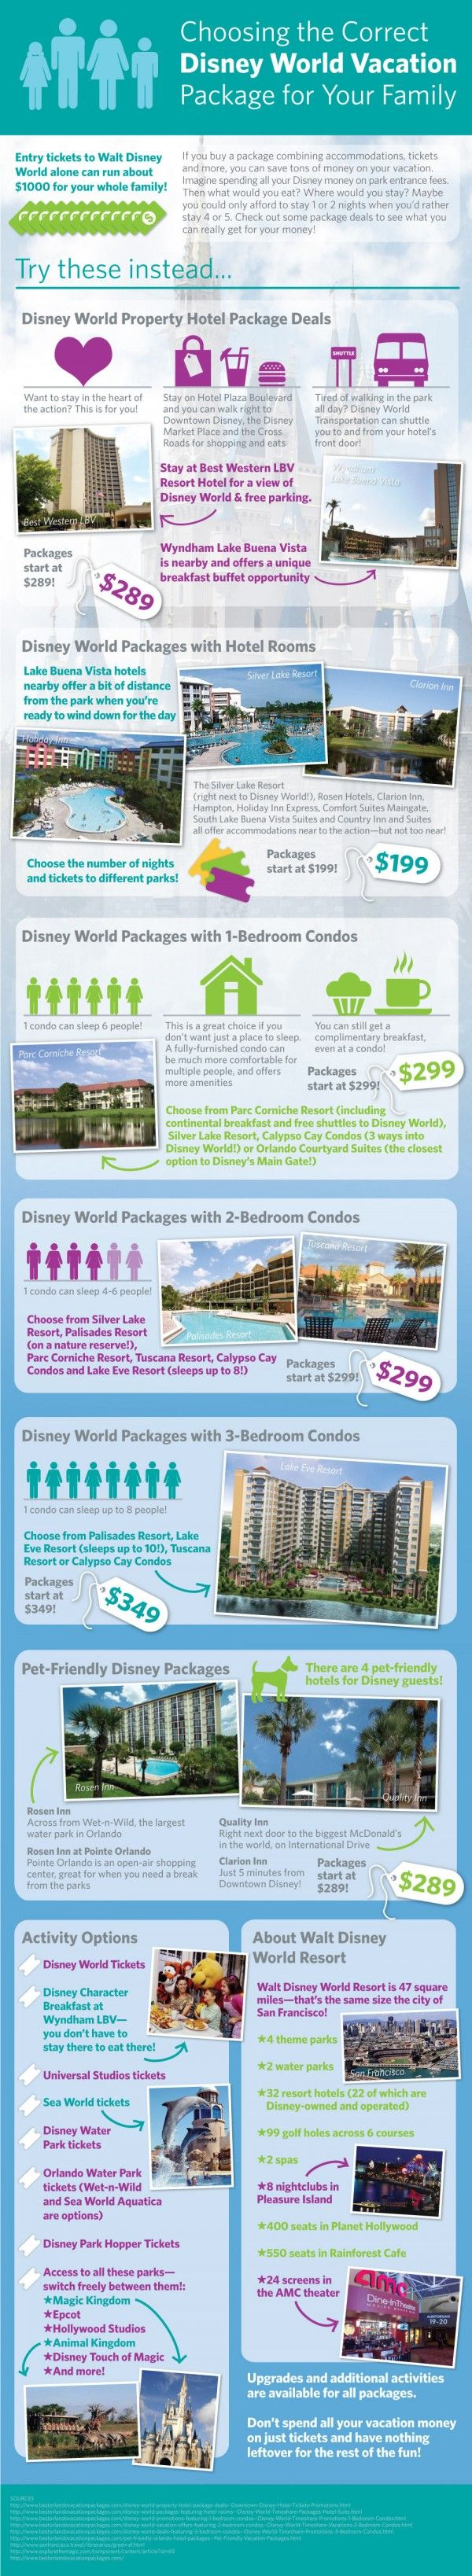 Best Disney Vacation Packages Ideas On Pinterest Disney - Disney family packages